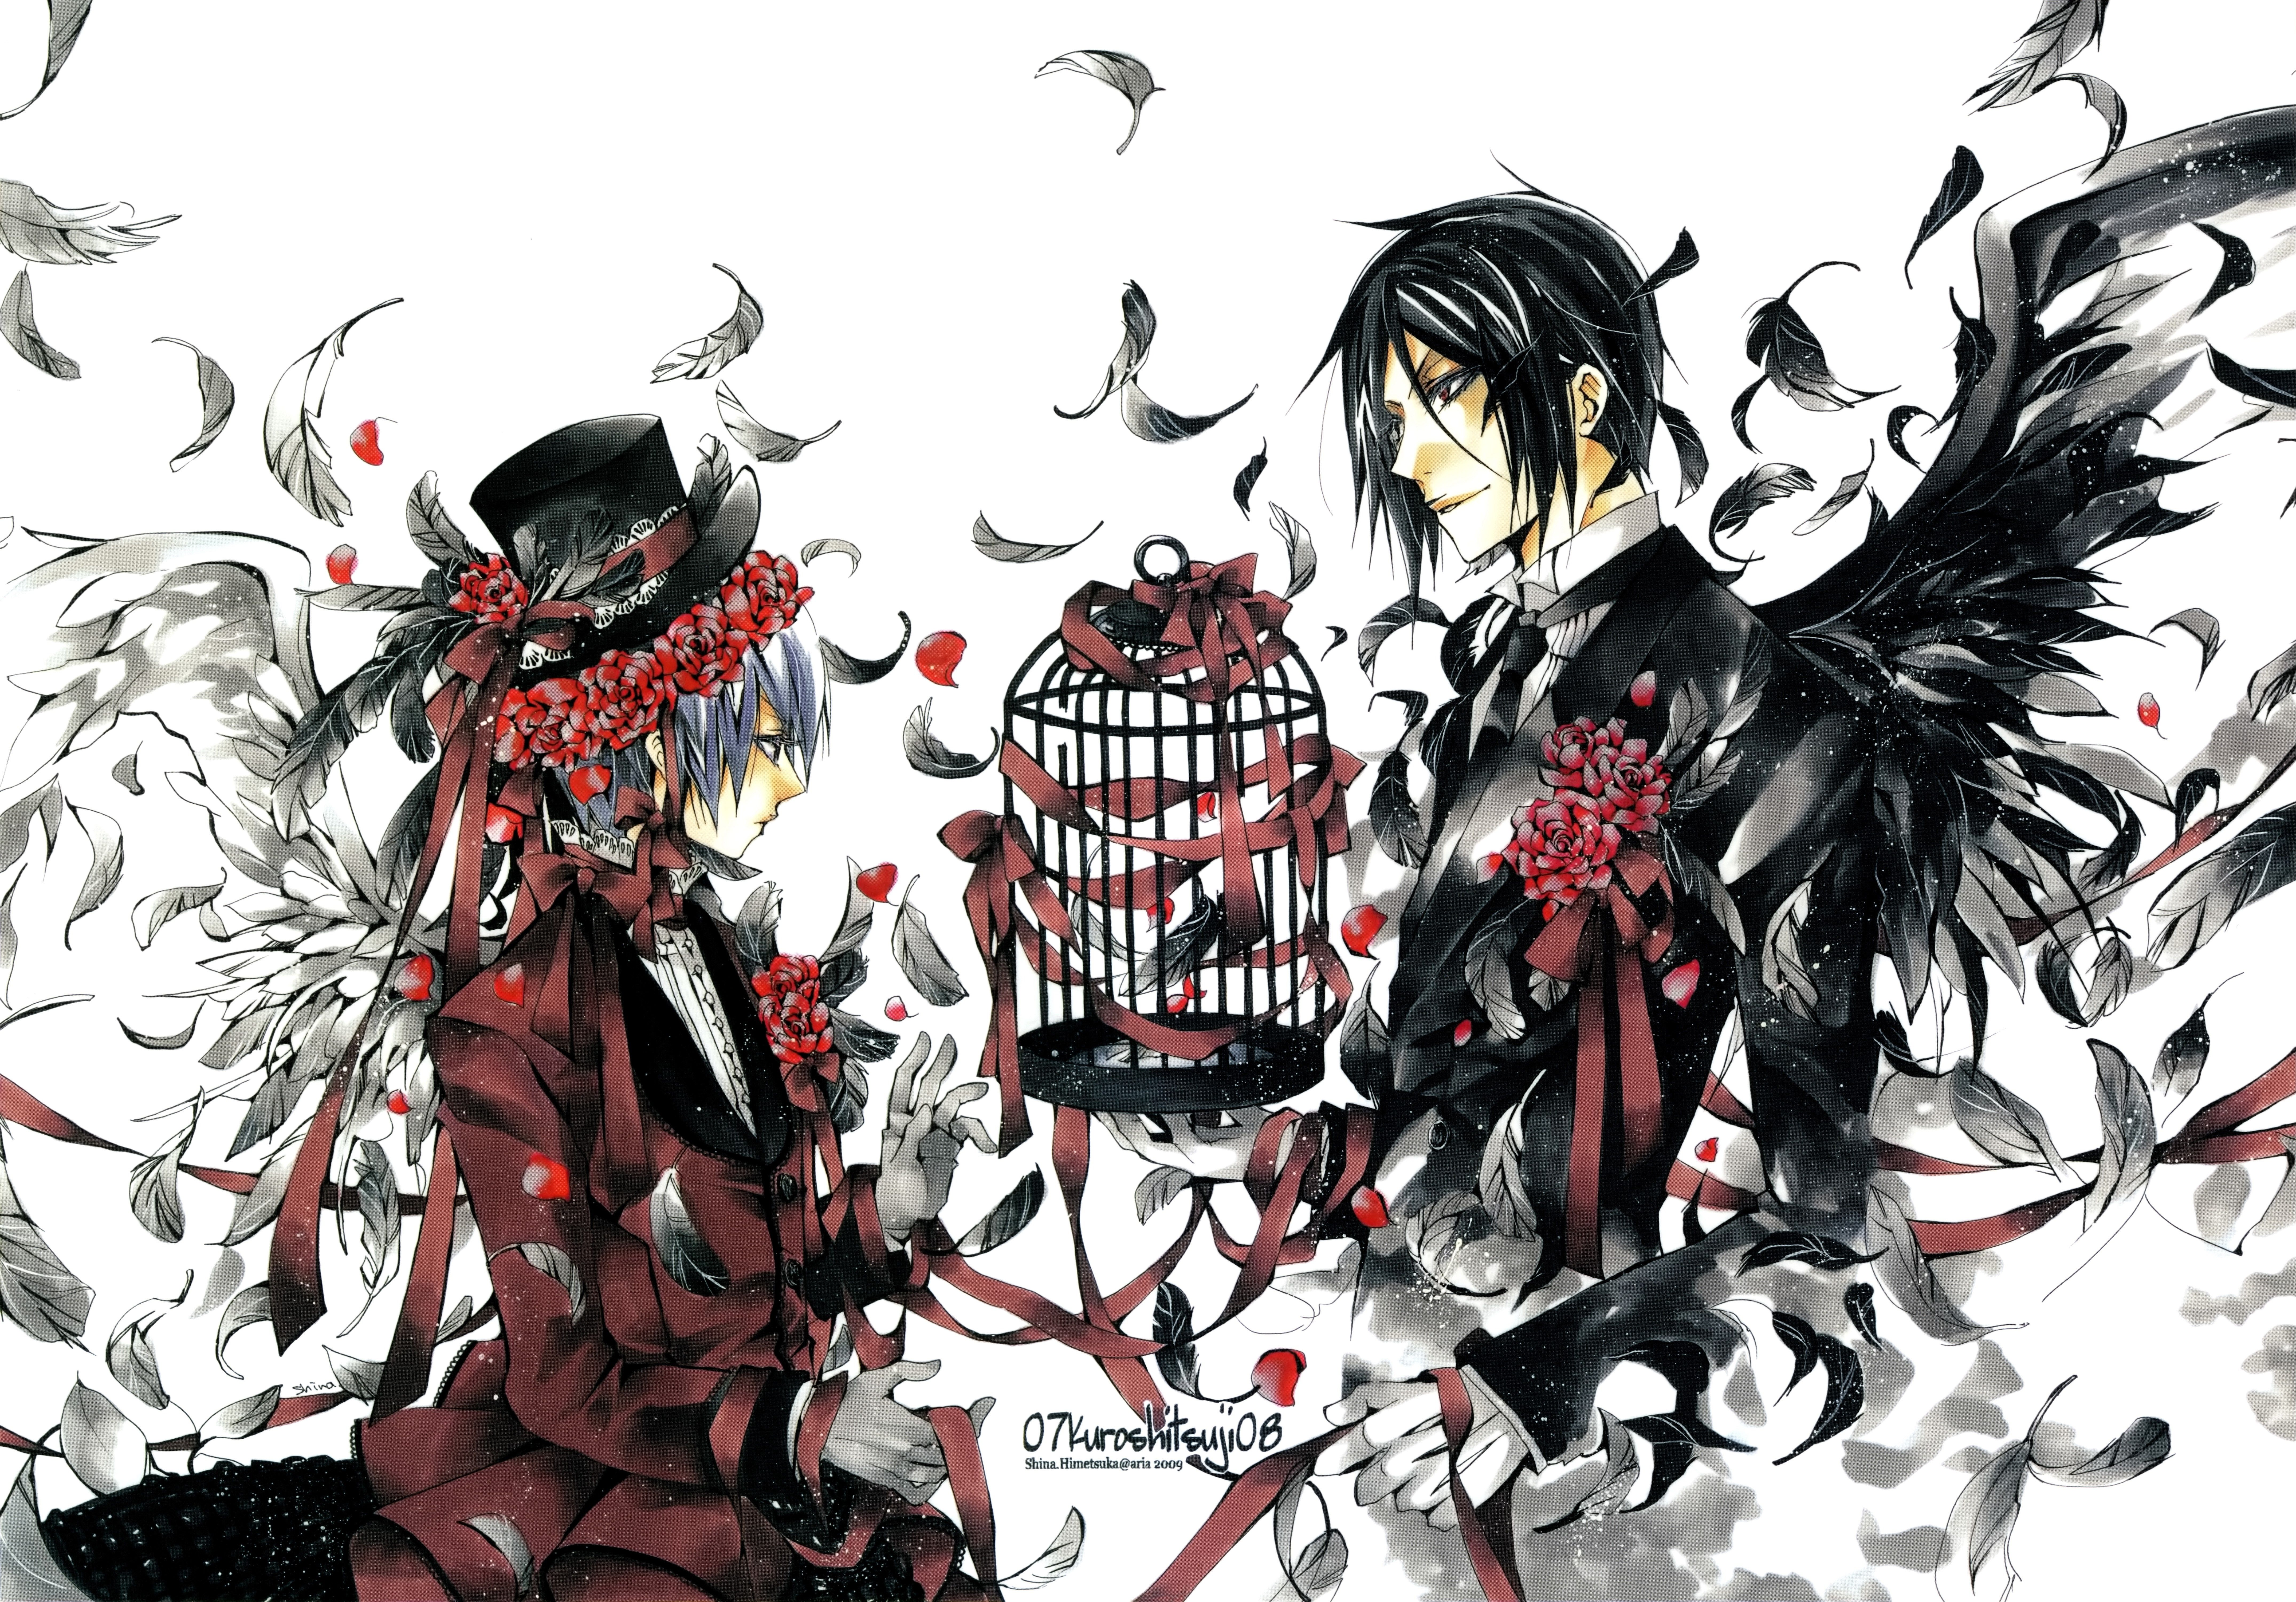 Free Desktop Wallpaper Downloads Black Butler Mansfield Archibald 8600x6002